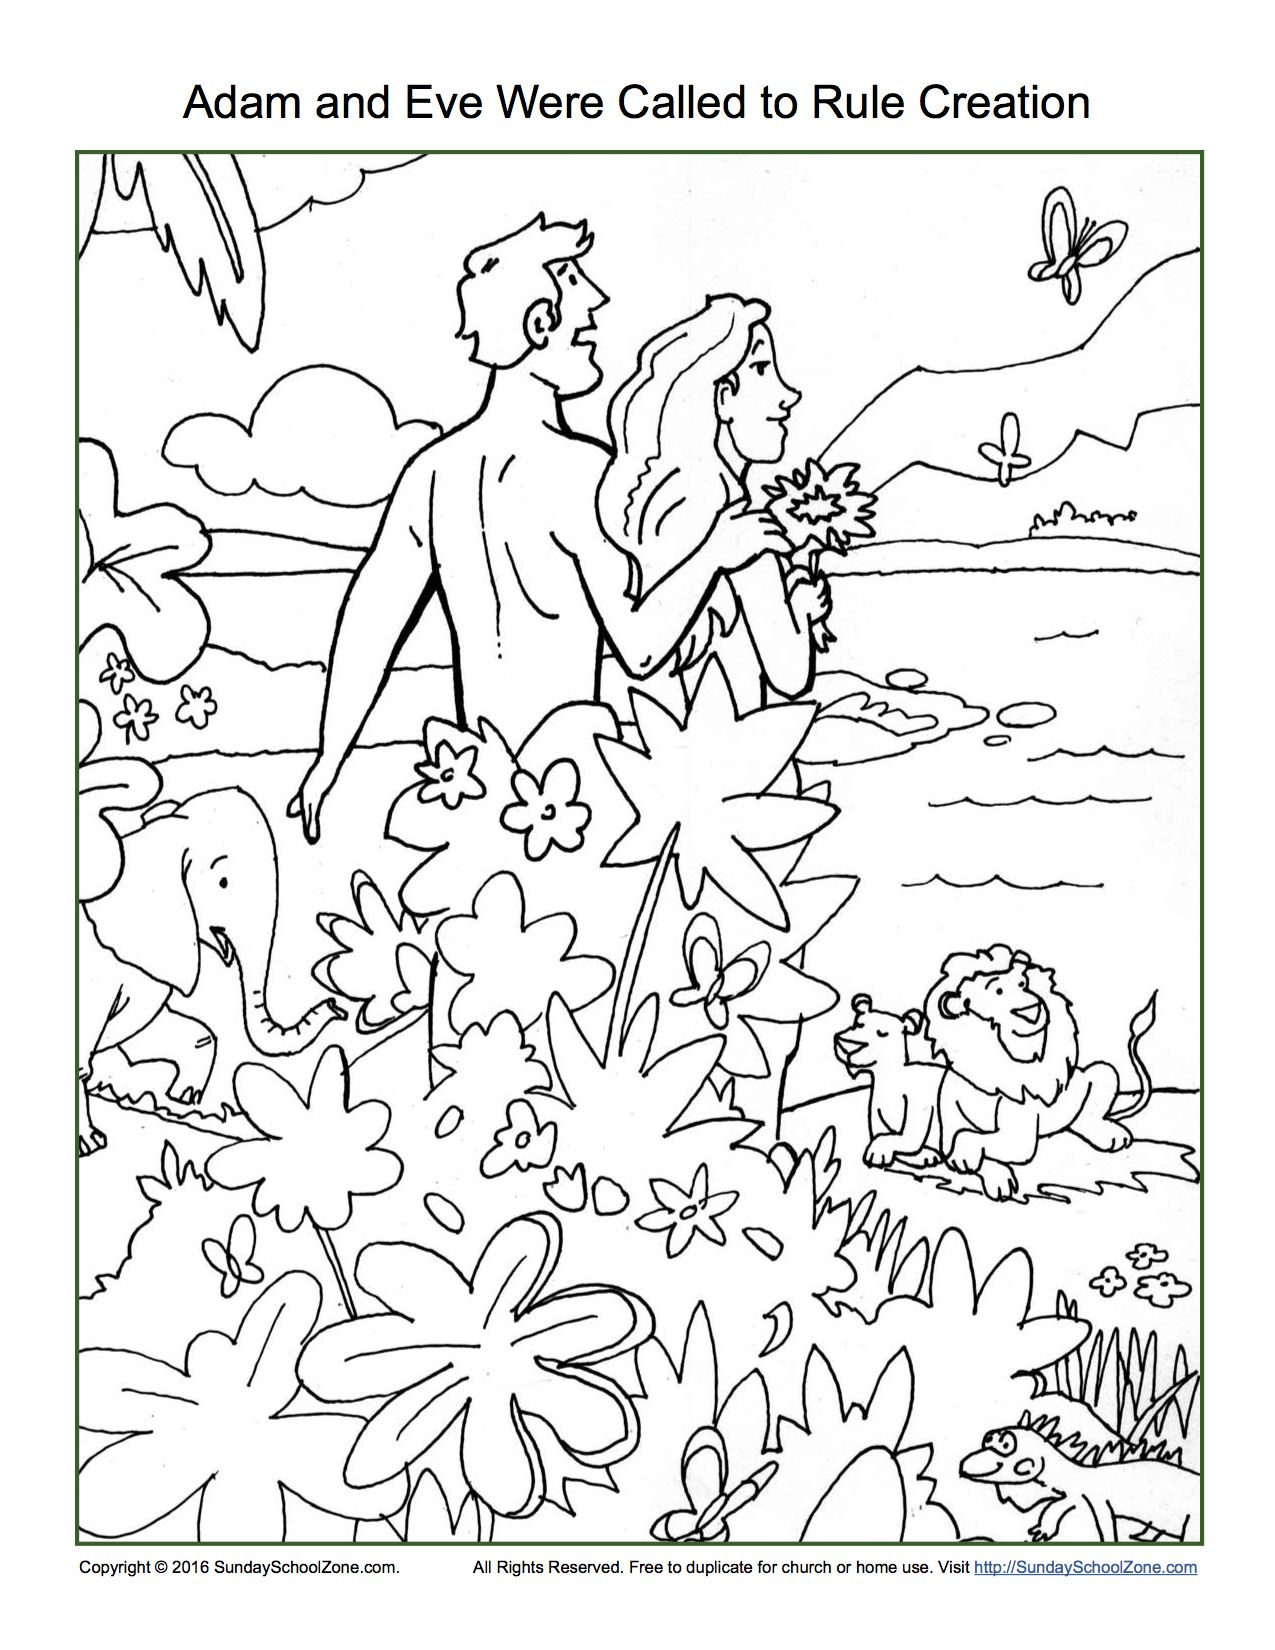 Adam and eve were called to rule creation coloring page for Coloring pages adam and eve